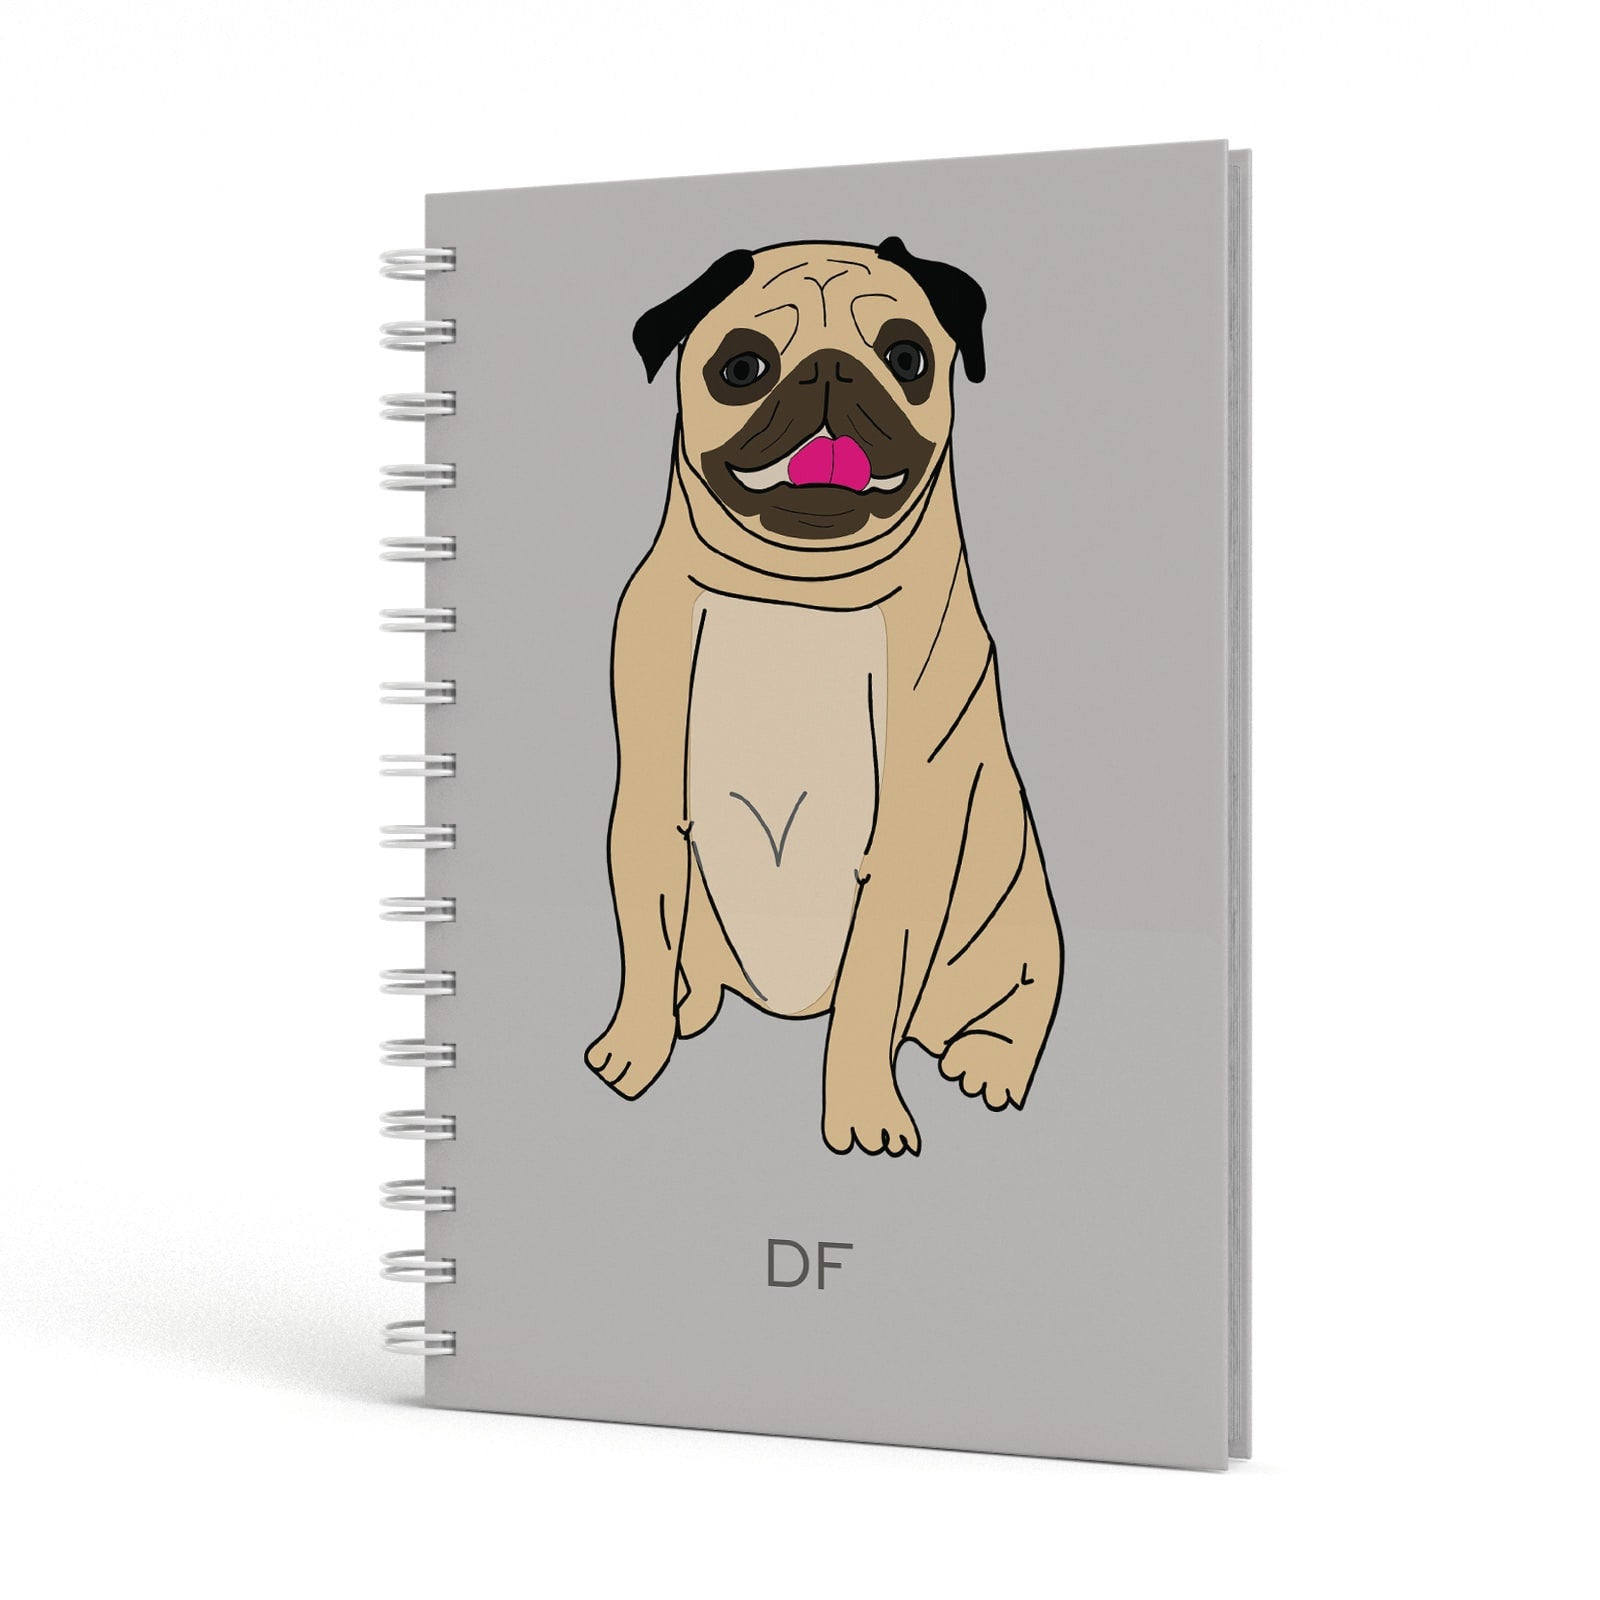 Personalised Initials Pug A5 Hardcover Notebook Side View